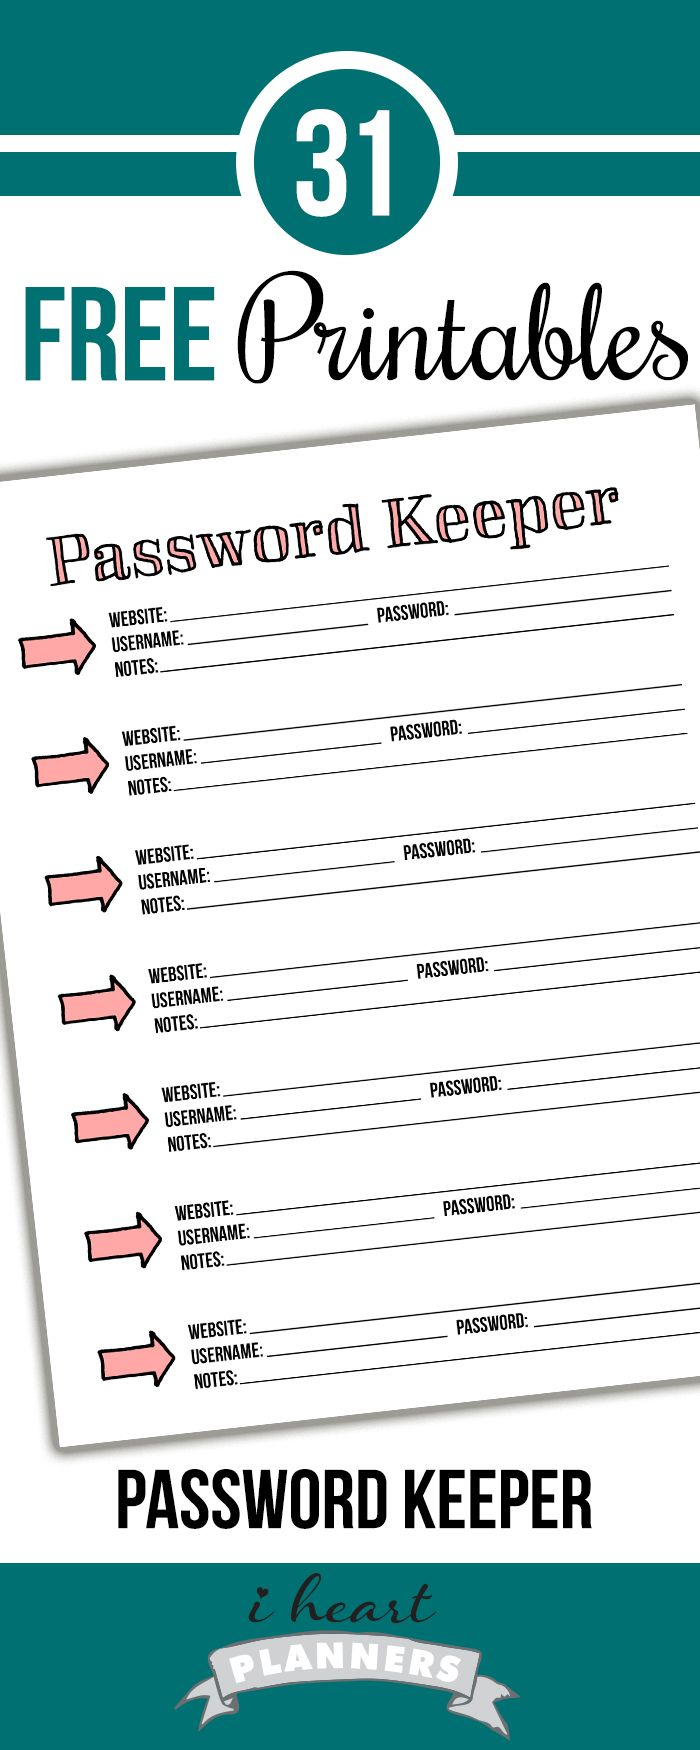 Welcome to Day 6 of the 31 days of free printables! Today's printable was requestedby several of you who wanted a place to keep track of your passwords and log in information. If you are anything like me, you have a lot of passwords to remember. Click below to download the pdf version of this …